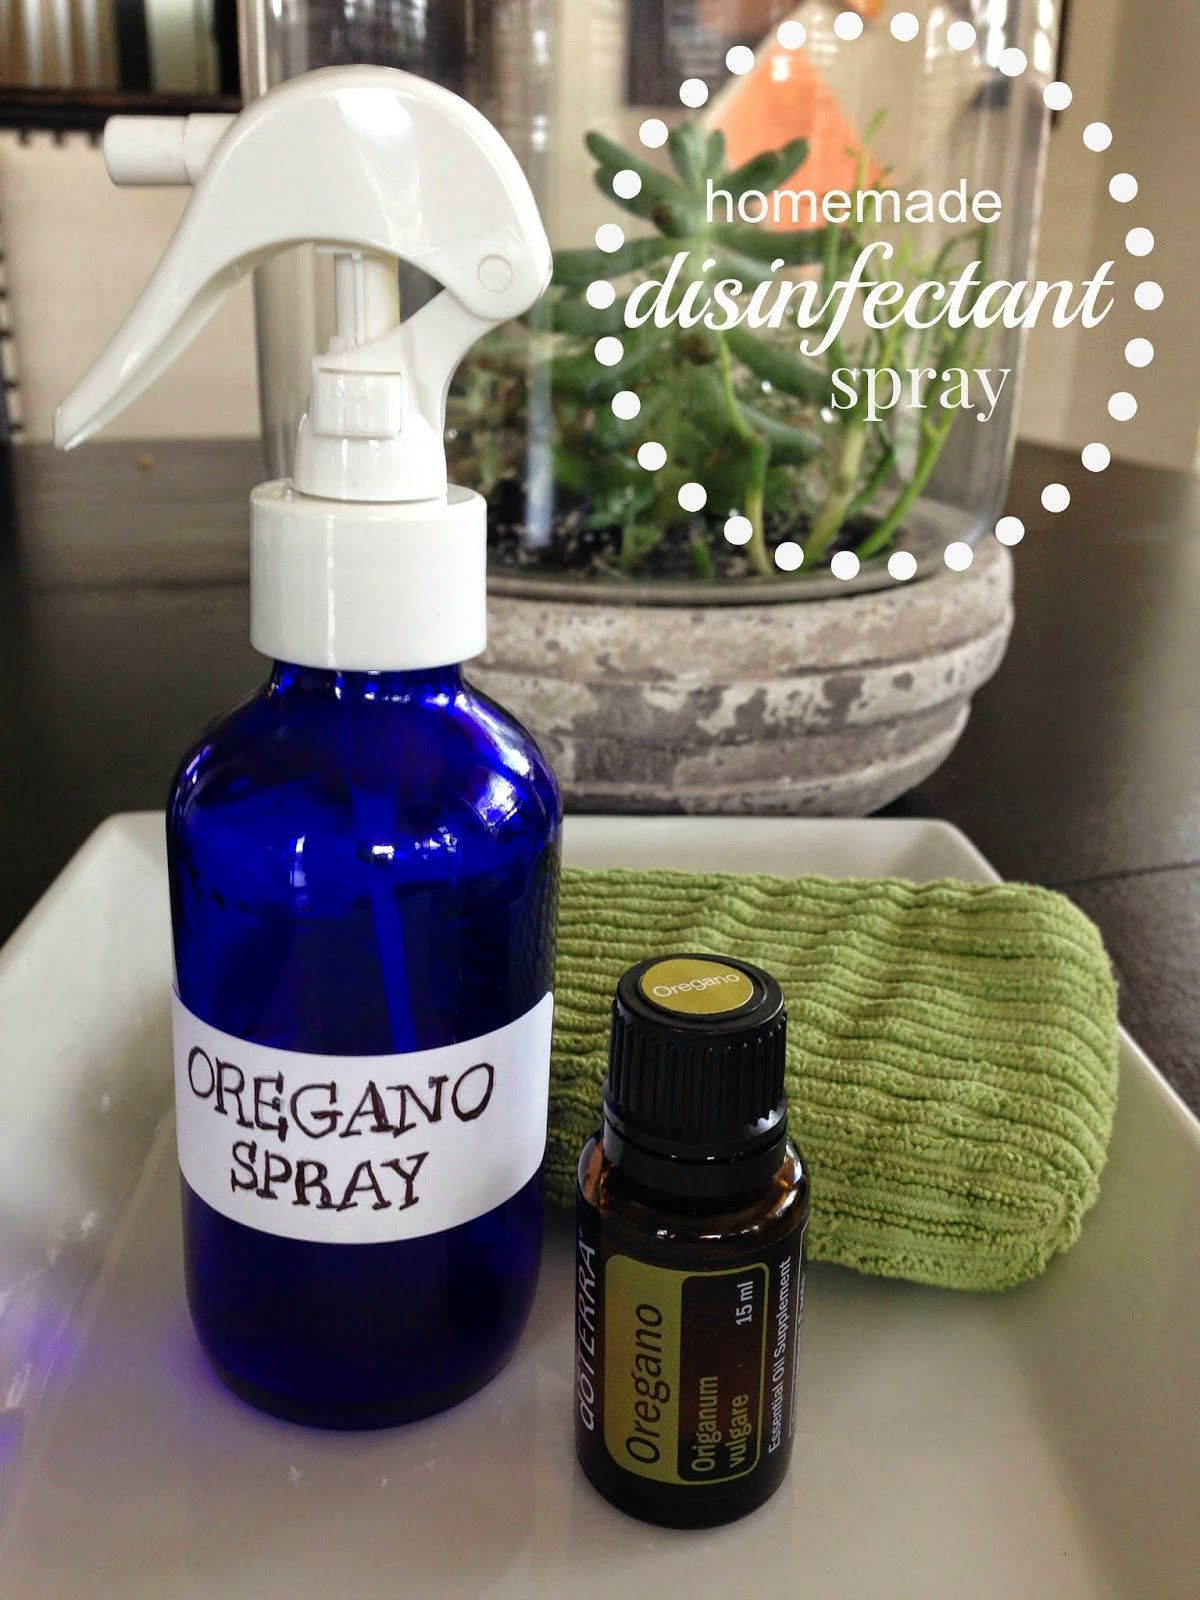 Homemade Disinfectant Spray Using Oregano Essential Oil Oregano